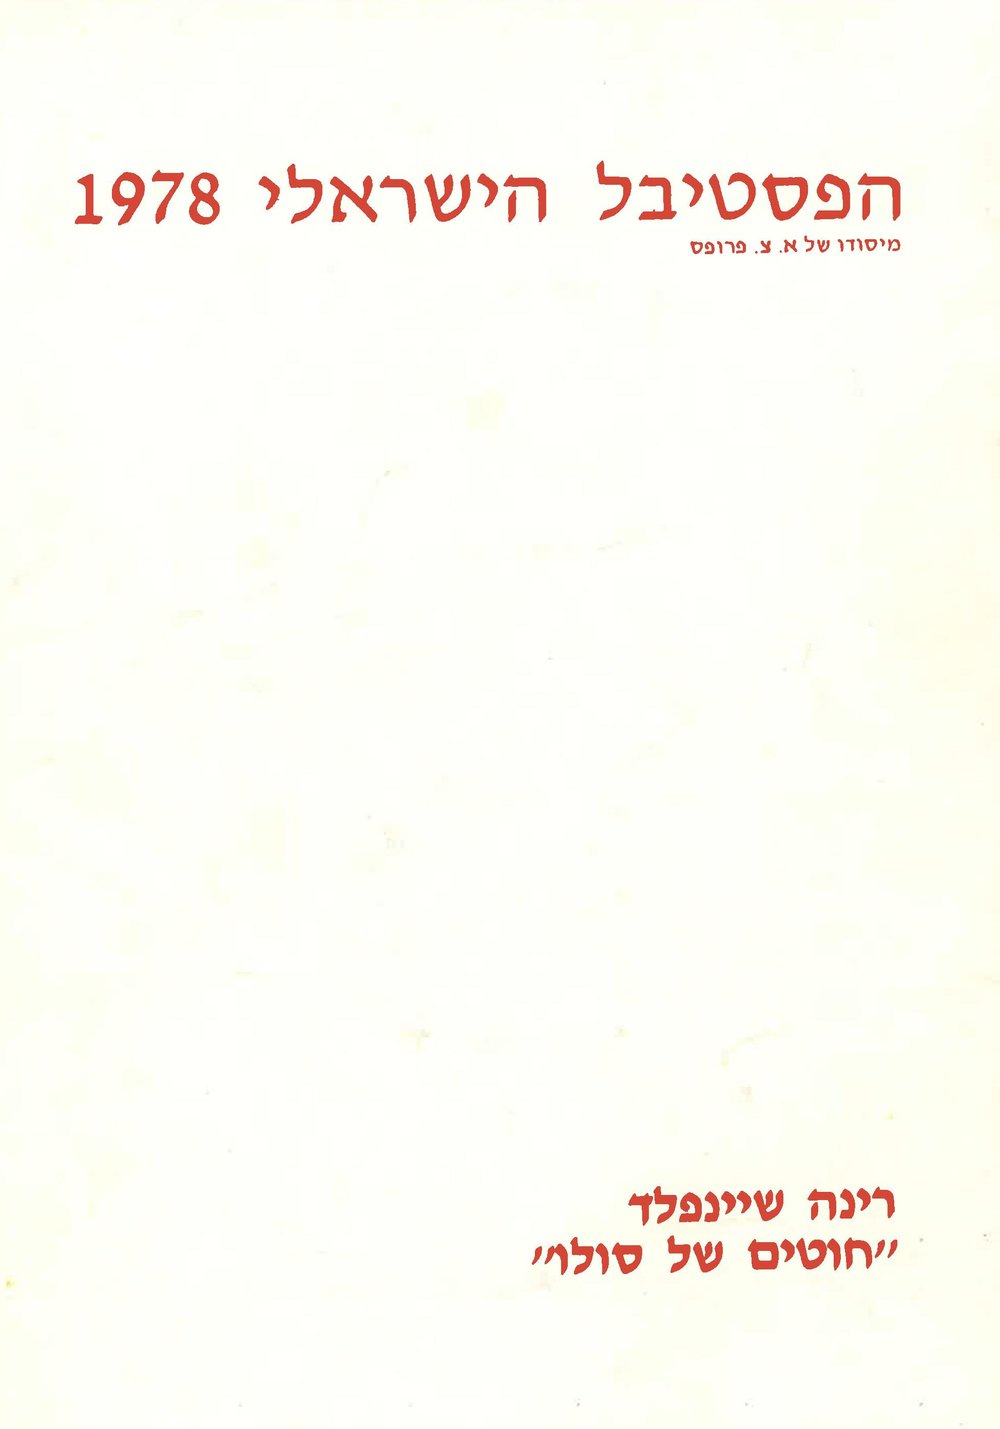 PROGRAMME THE FESTIVAL OF ISRAEL HEBREW COVER  .jpg